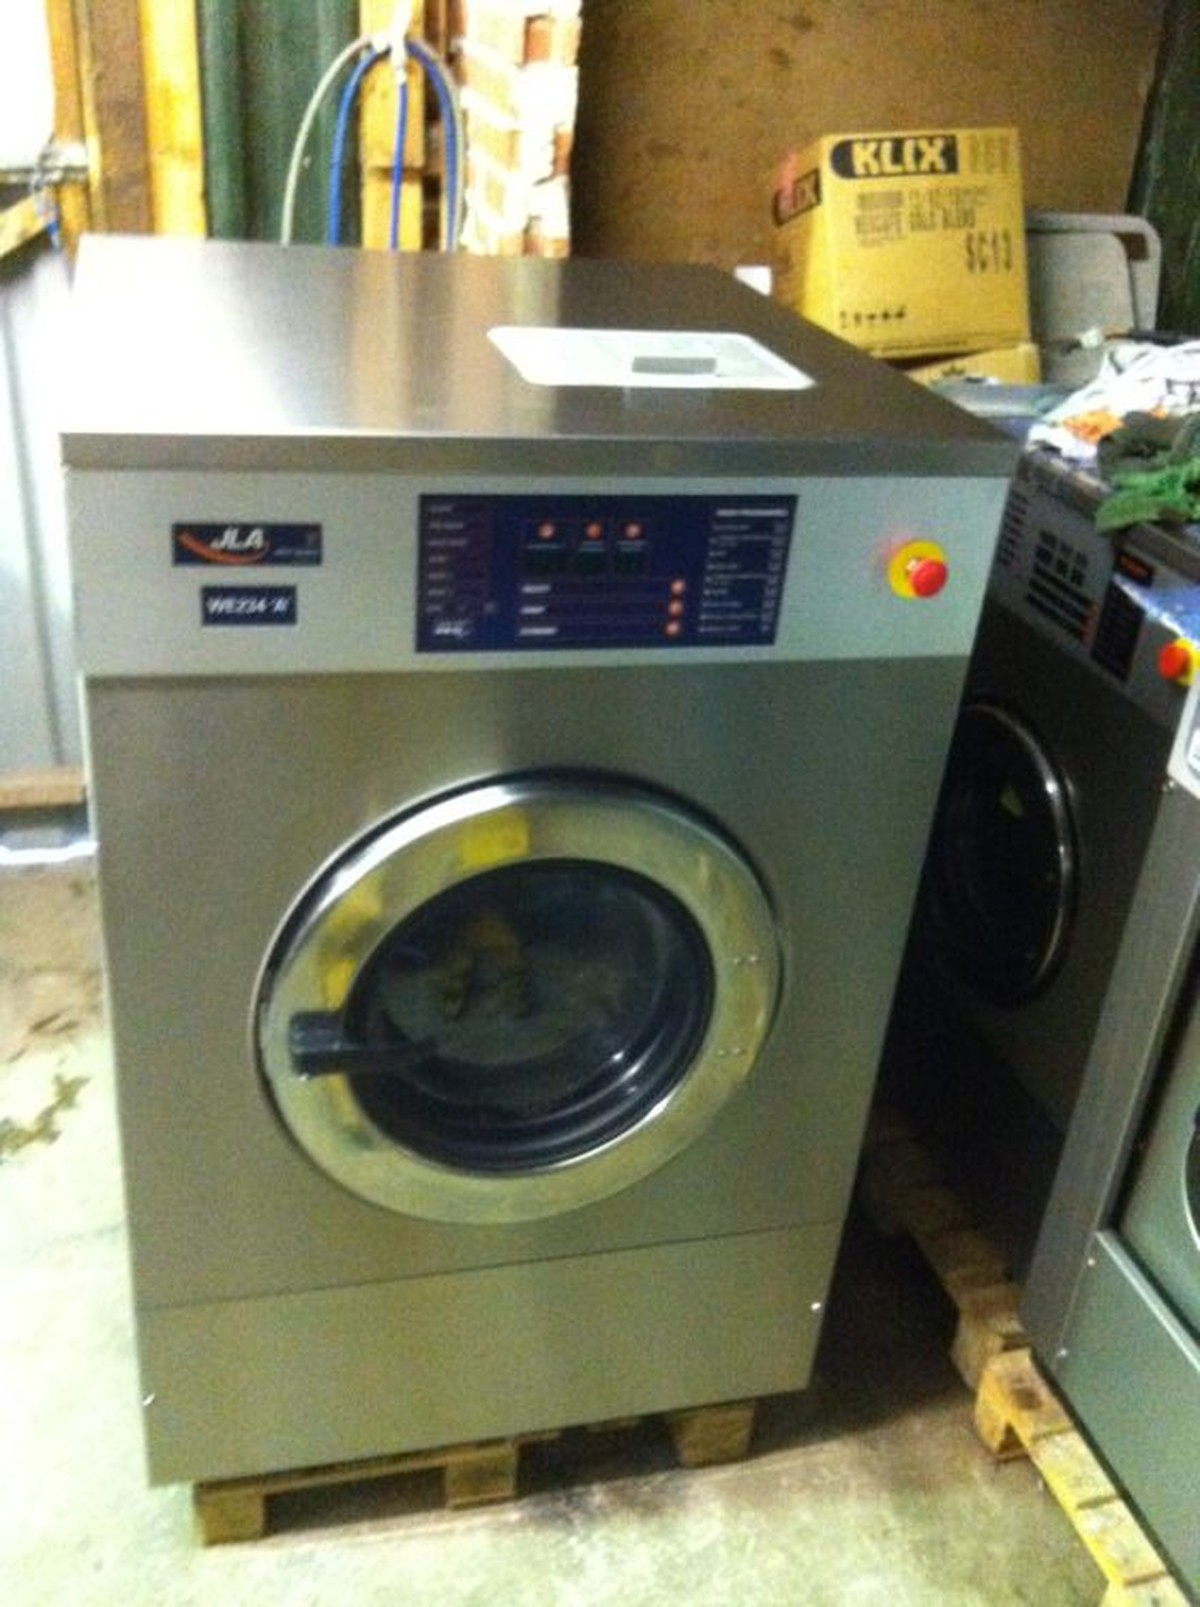 ipso washing machine for sale